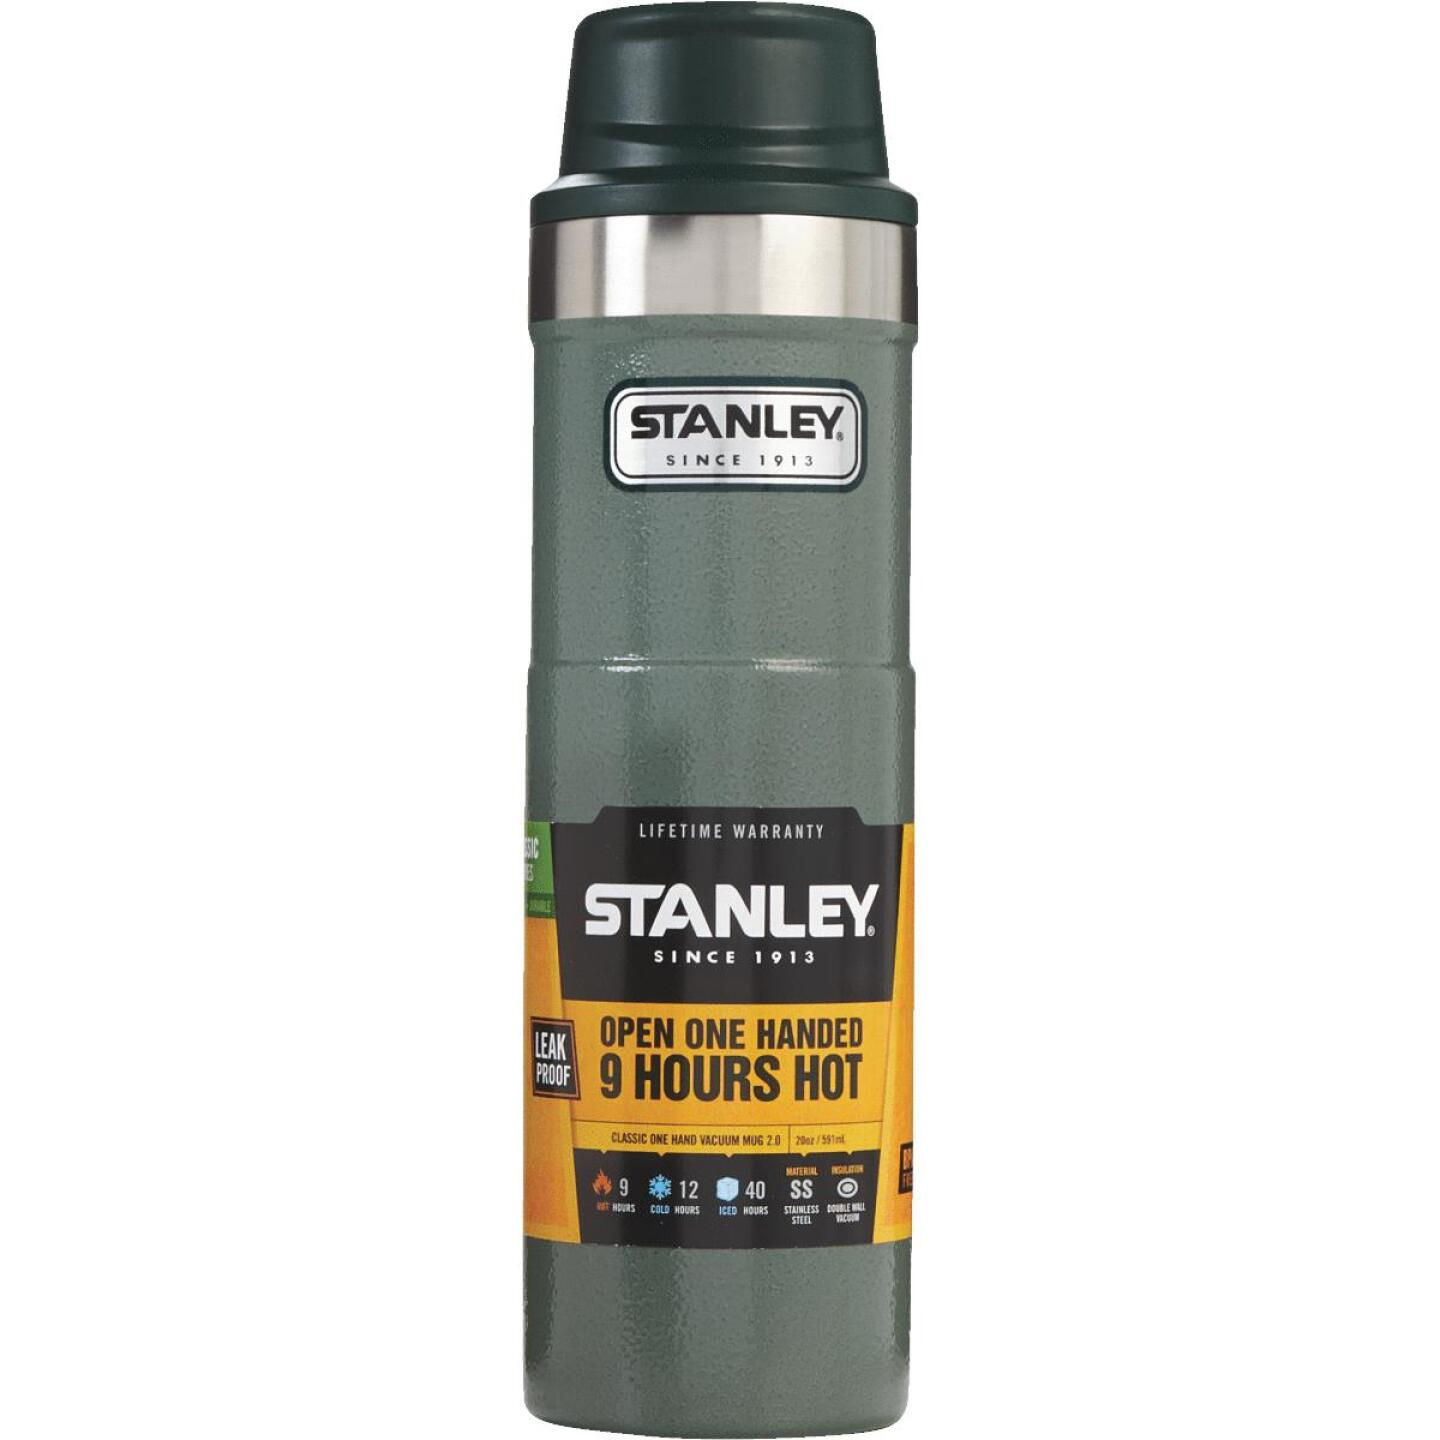 Stanley 20 Oz. Hammertone Green Trigger Action Insulated Tumbler Image 1